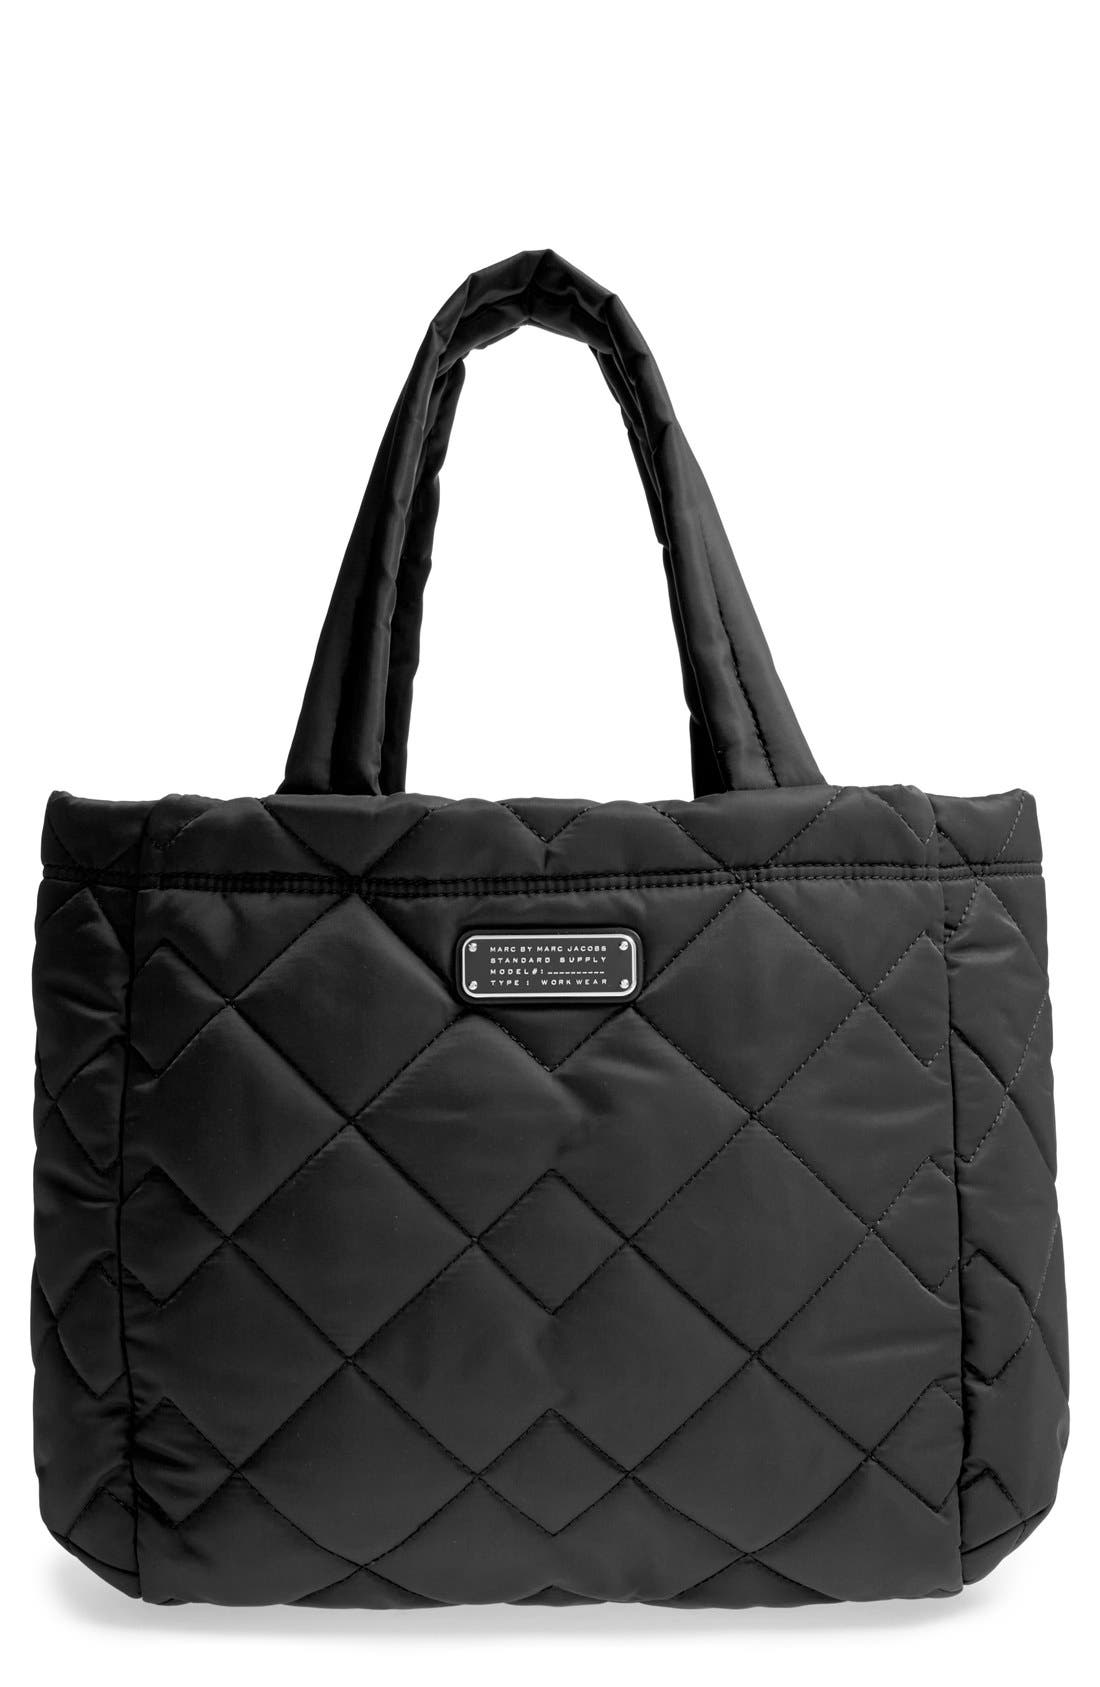 MARC BY MARC JACOBS 'Small Crosby' Quilted Nylon Tote,                             Main thumbnail 1, color,                             001